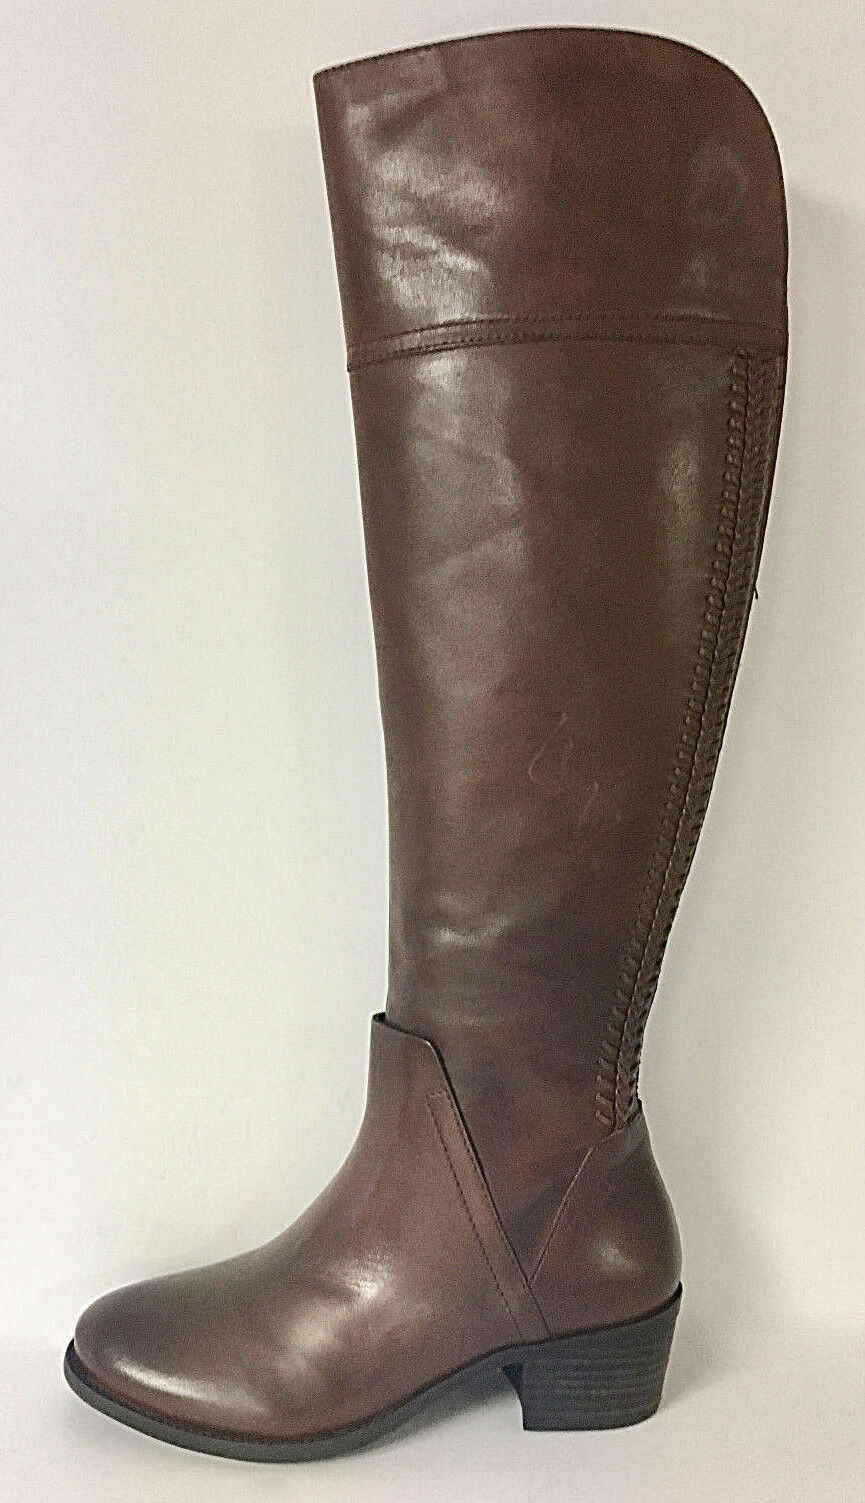 VINCE CAMUTO - BENDRA RUSSET OVER-THE-KNEE SPLIT SHAFT BOOT SZ 8.5, RETAIL  198